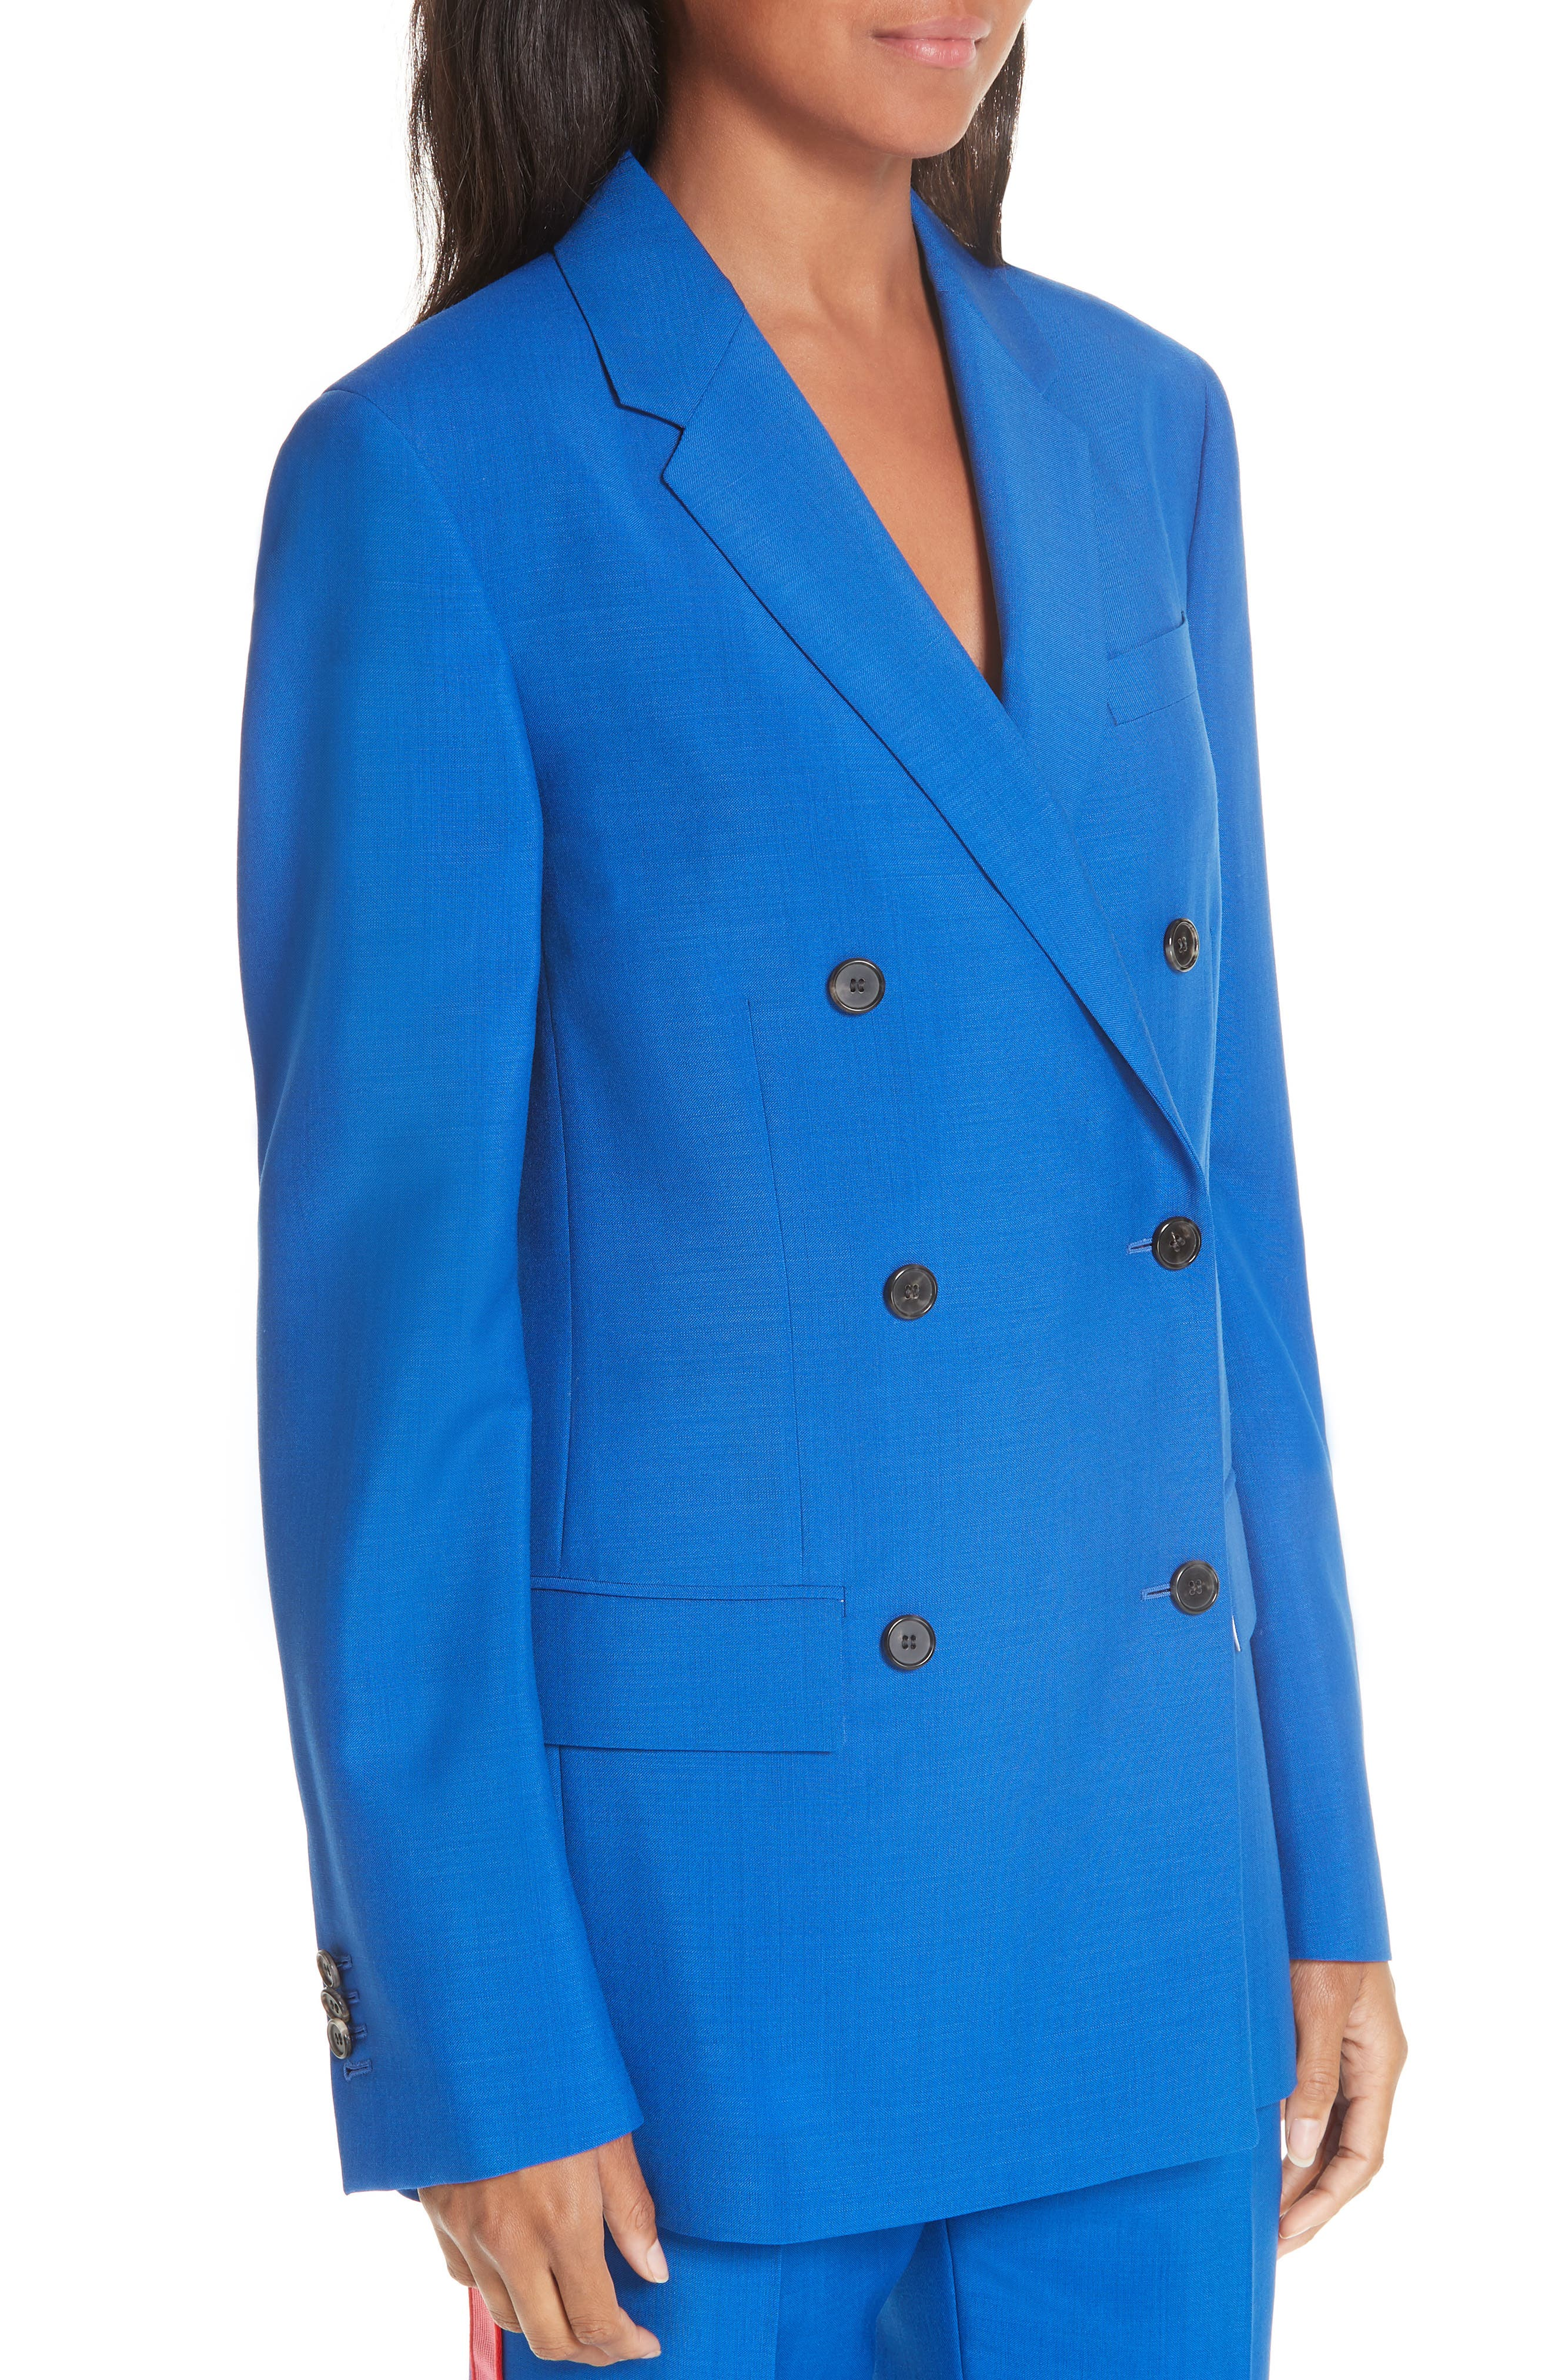 CALVIN KLEIN 205W39NYC, Mohair & Wool Double Breasted Blazer, Alternate thumbnail 4, color, BRIGHT BLUE